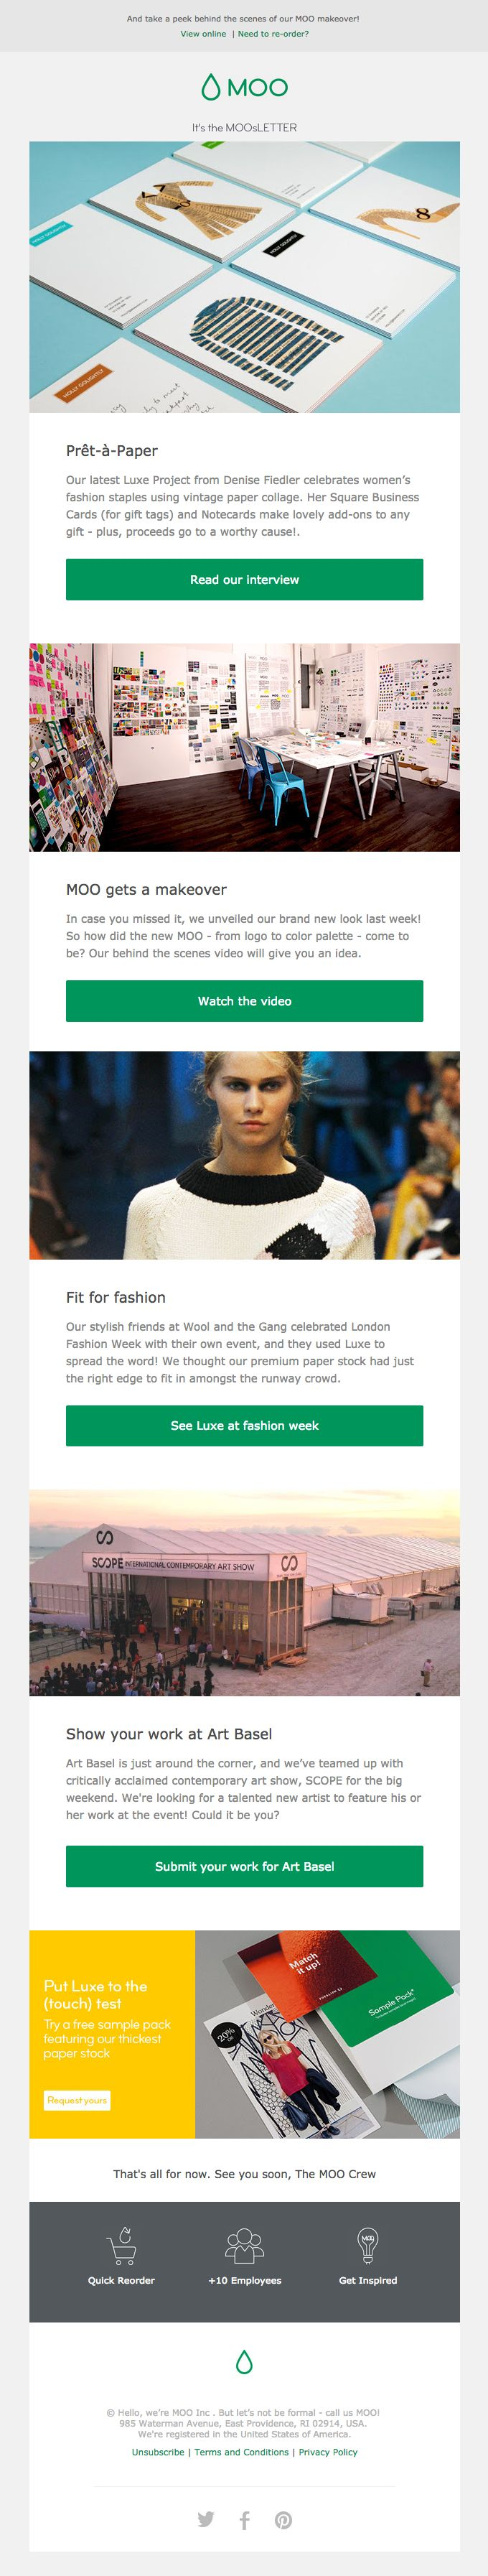 19 best moo email images on pinterest